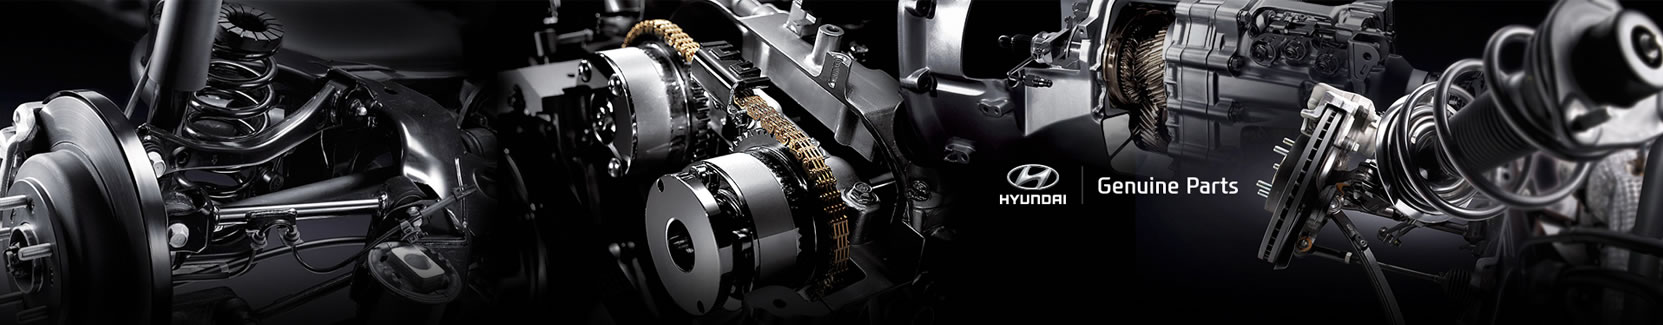 For all of your servicing and repairs, Metro Hyundai only use Hyundai genuine parts.